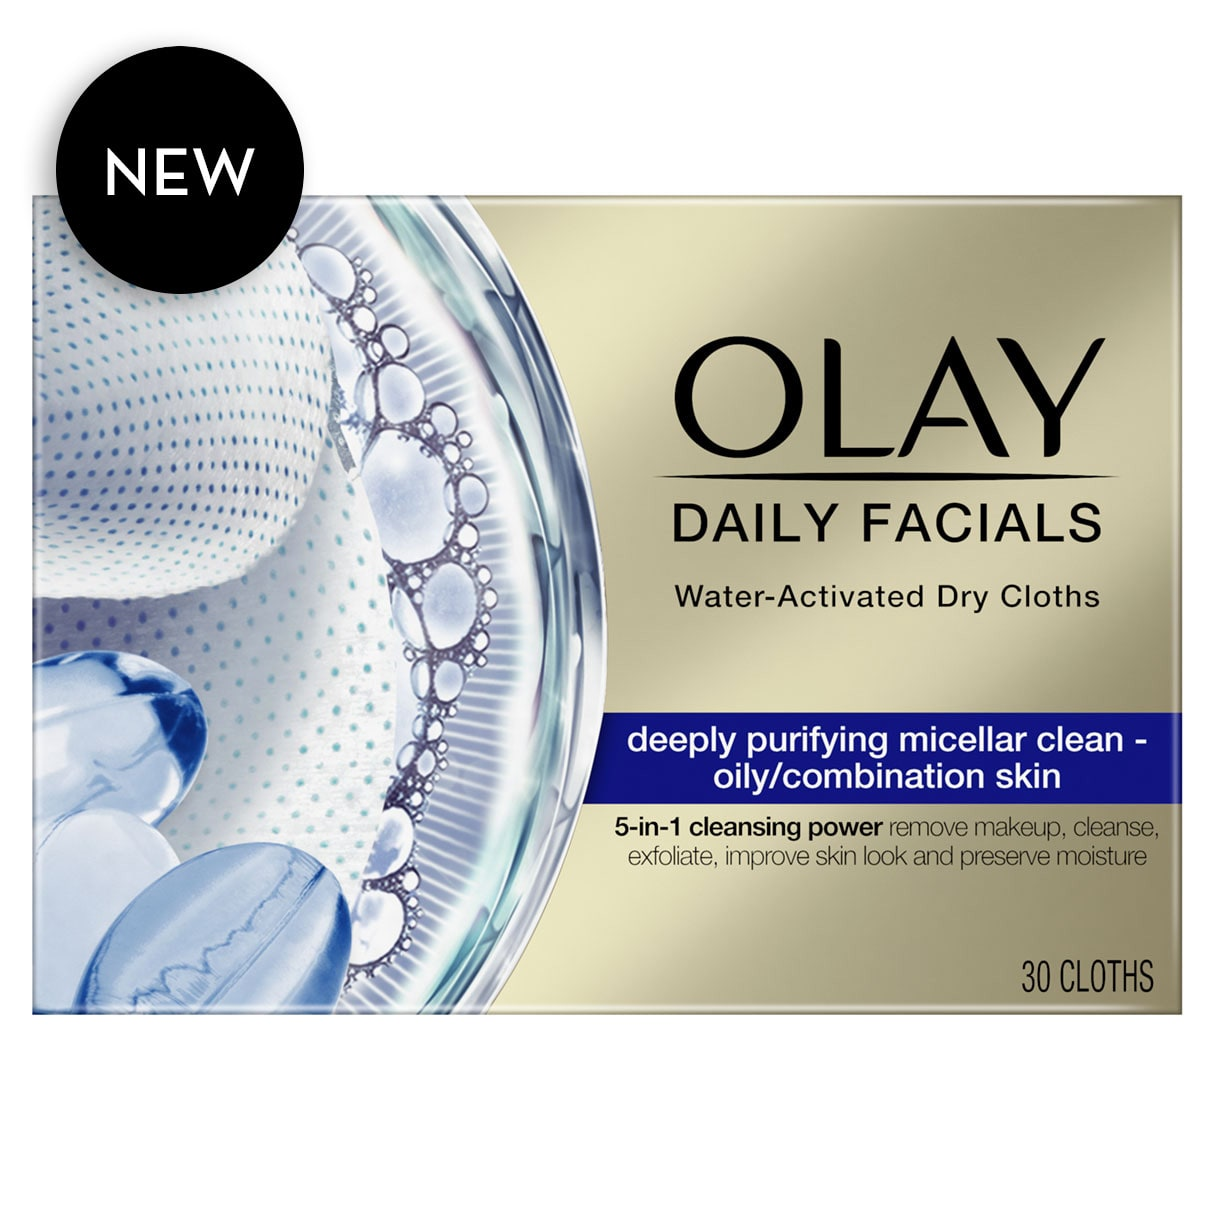 Olay Daily Facials, Oily skin, 30 Cloths